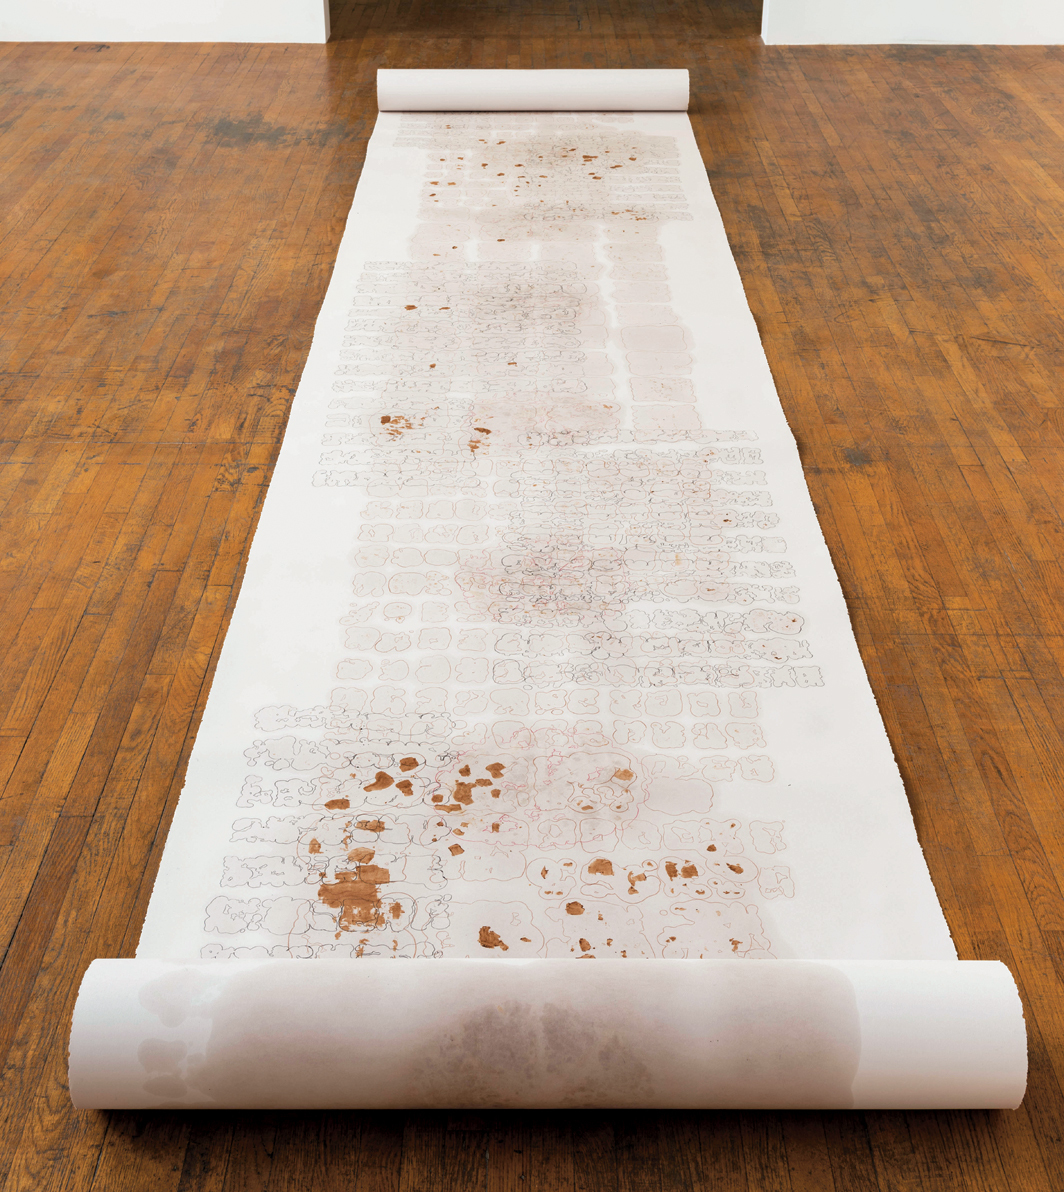 "Carmen Argote, Digesting Scroll—Feb, March, April, 2020, protein-bar oil, chocolate, and crayon on paper,  22' × 4' 2""."